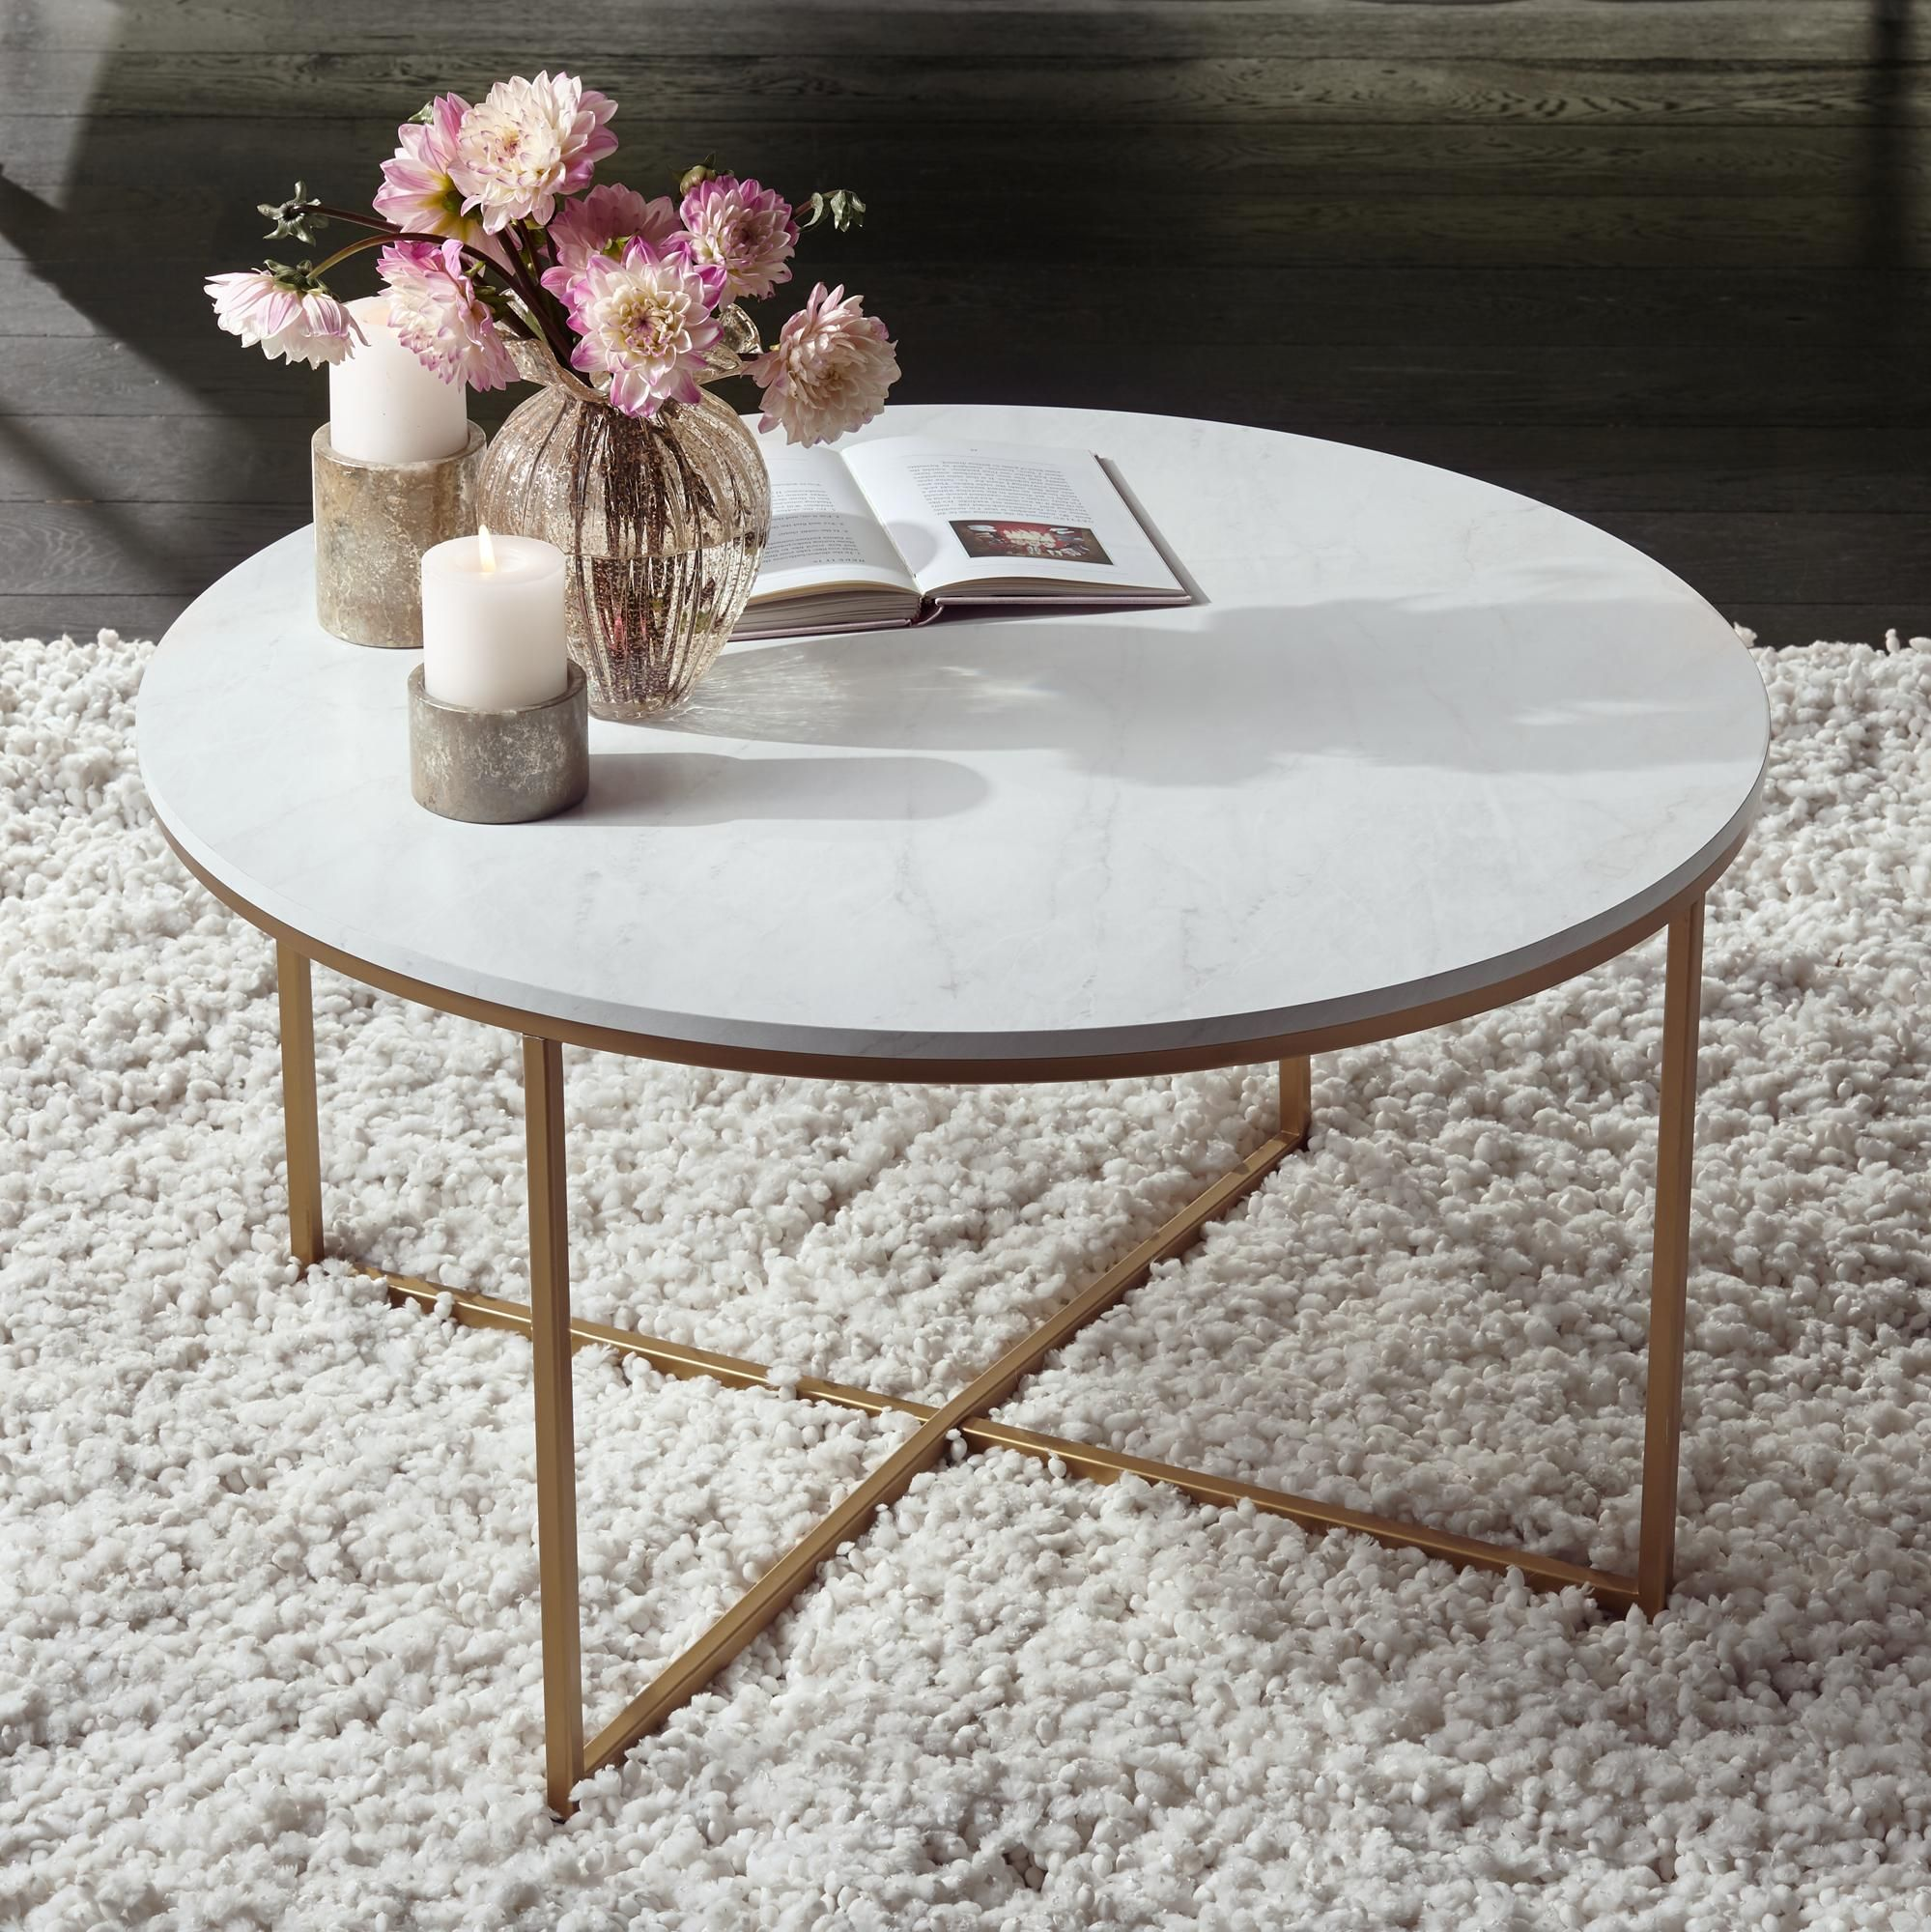 Tables Aurelia 36 Wide Faux Marble And Gold Modern Coffee Table Gold Coffee Table Decorating Coffee Tables Round Coffee Table